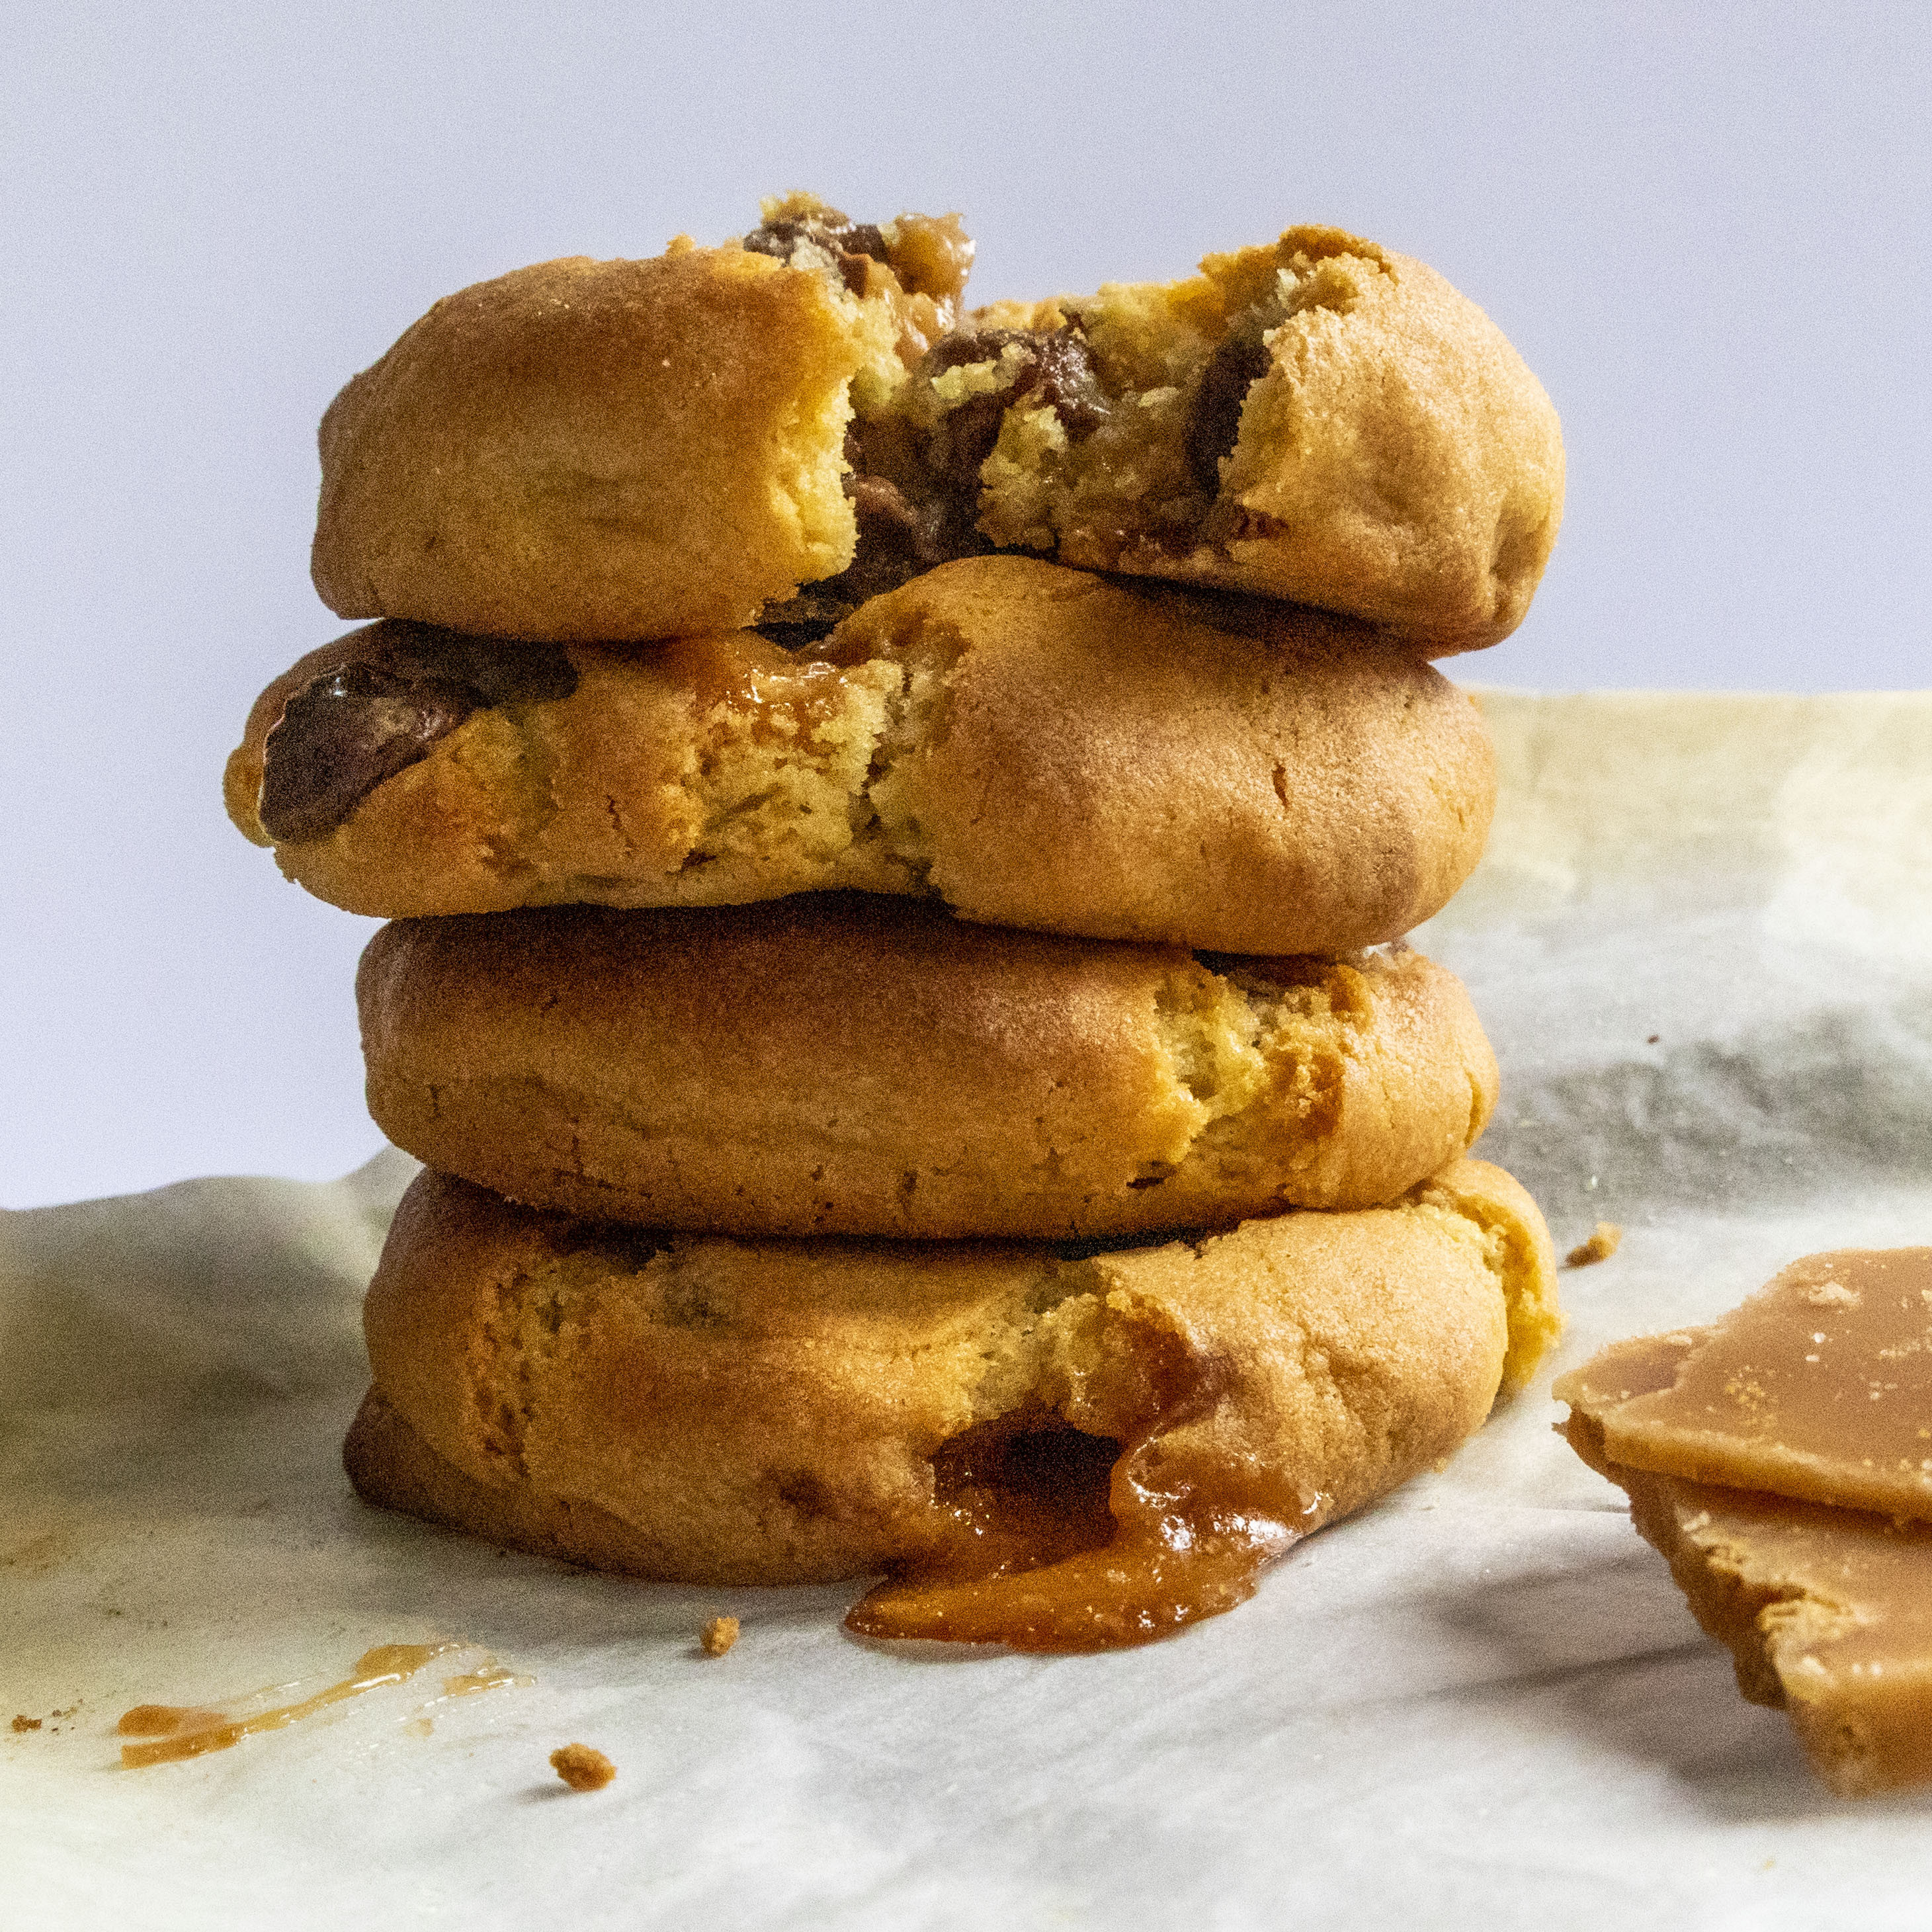 A stack of thick Biscoff fudge Chocolate Chip Cookies with small stack of Biscoff Fudge going out of the shot.